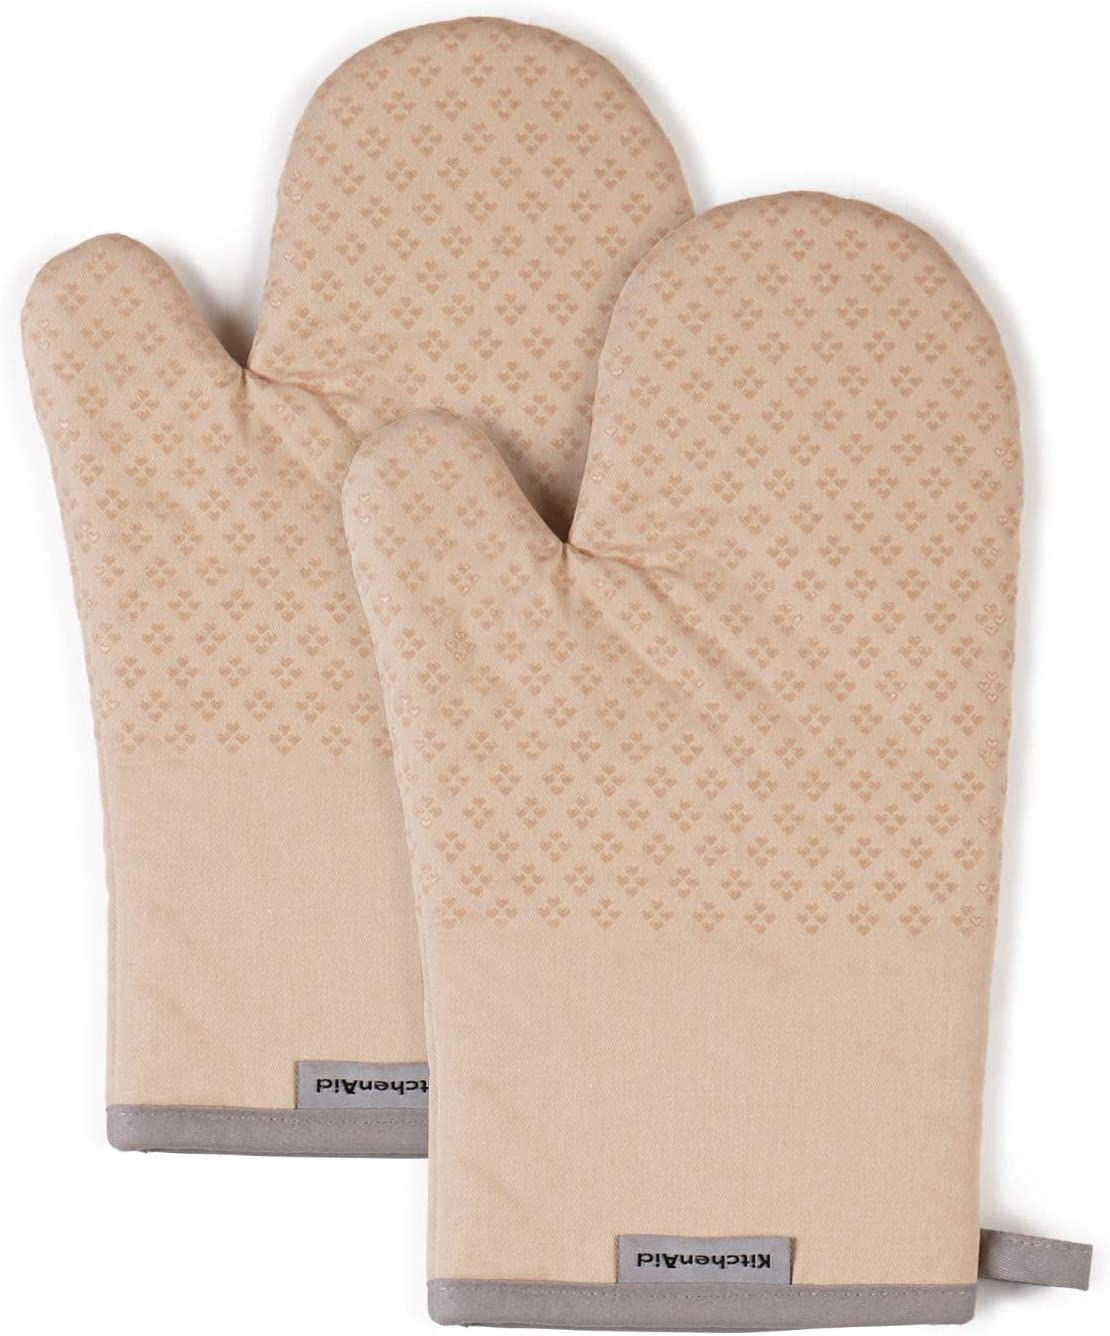 KitchenAid Asteroid Cotton Oven Mitts with Silicone Grip, Set of 2, Beige